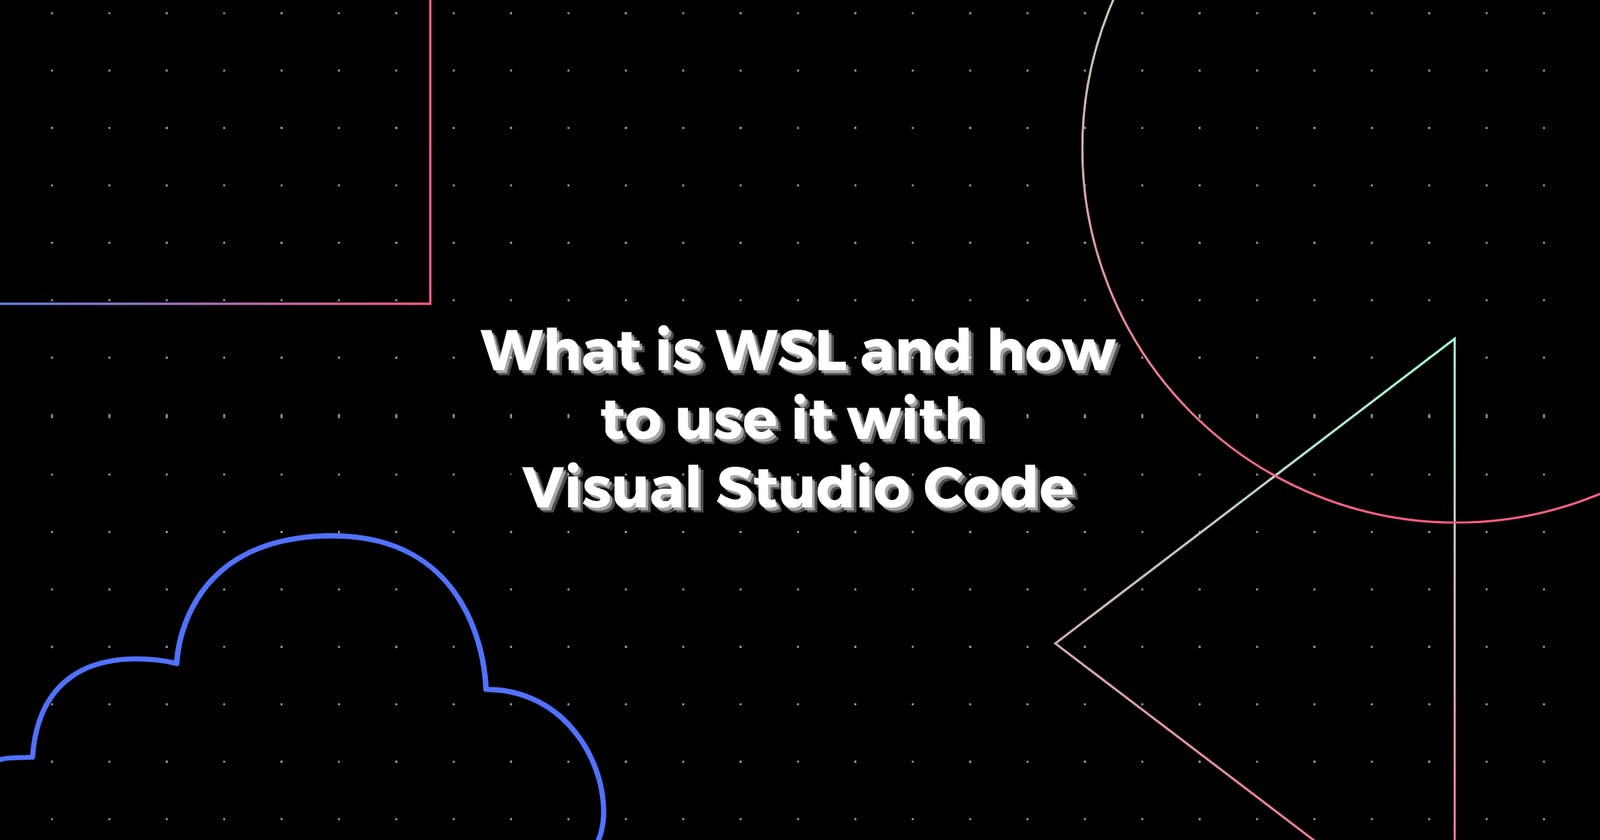 What is WSL and how to use it with VSCode